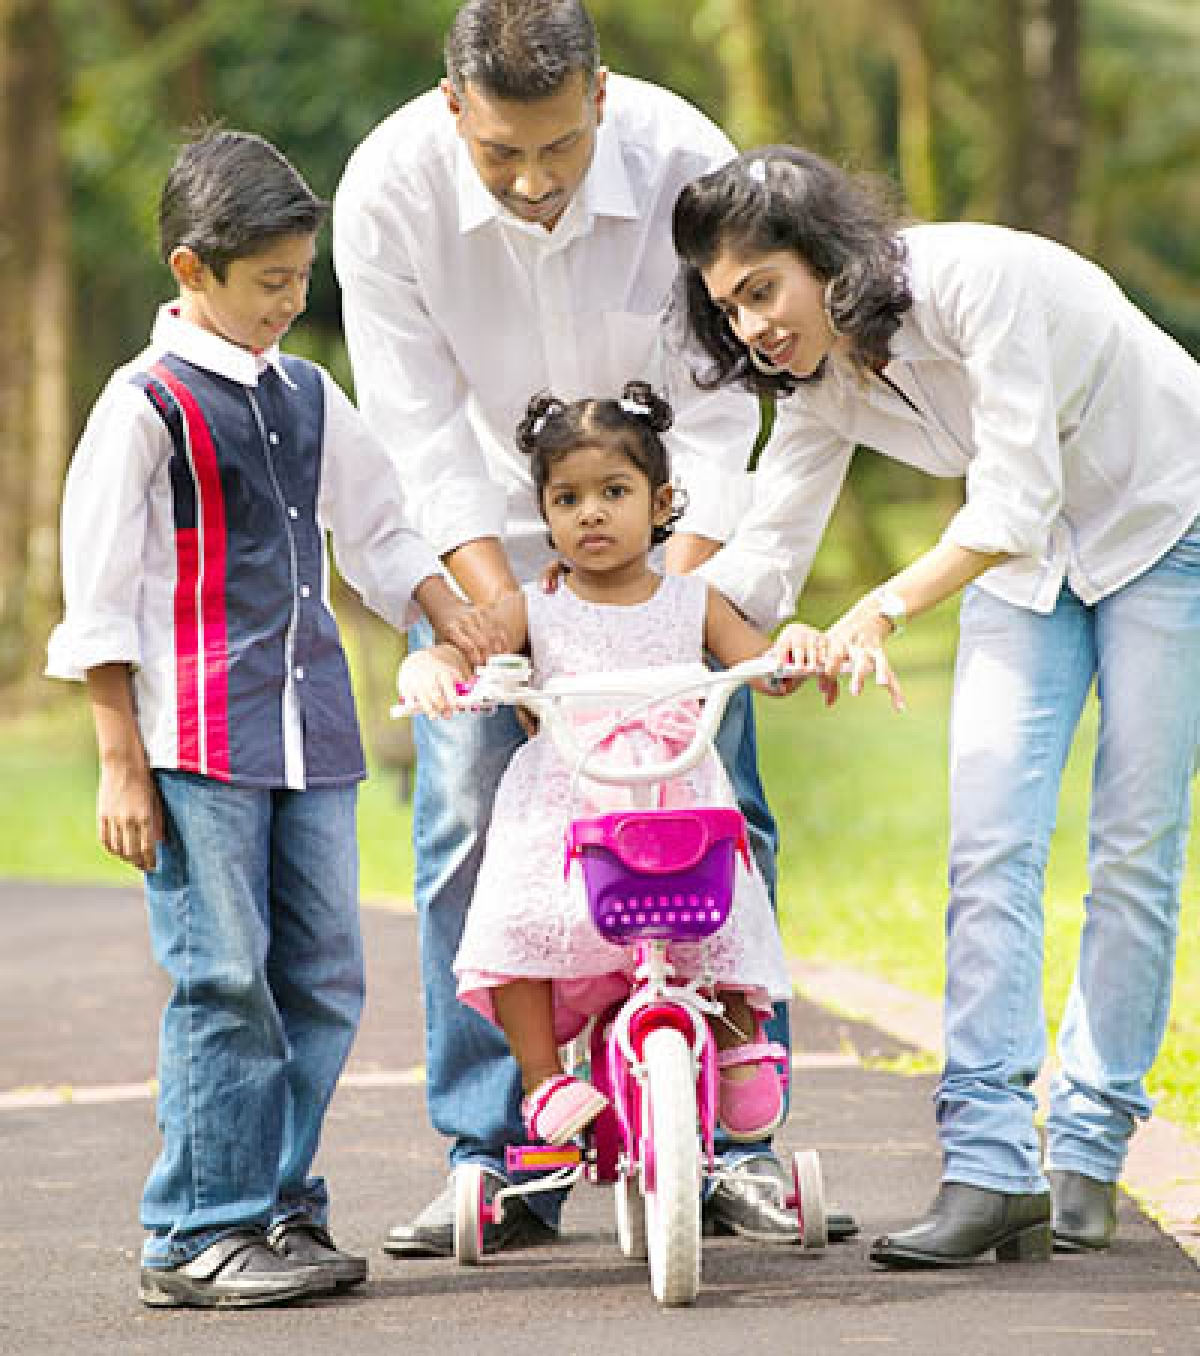 Self-worth of Indian kids  impacted by father's role